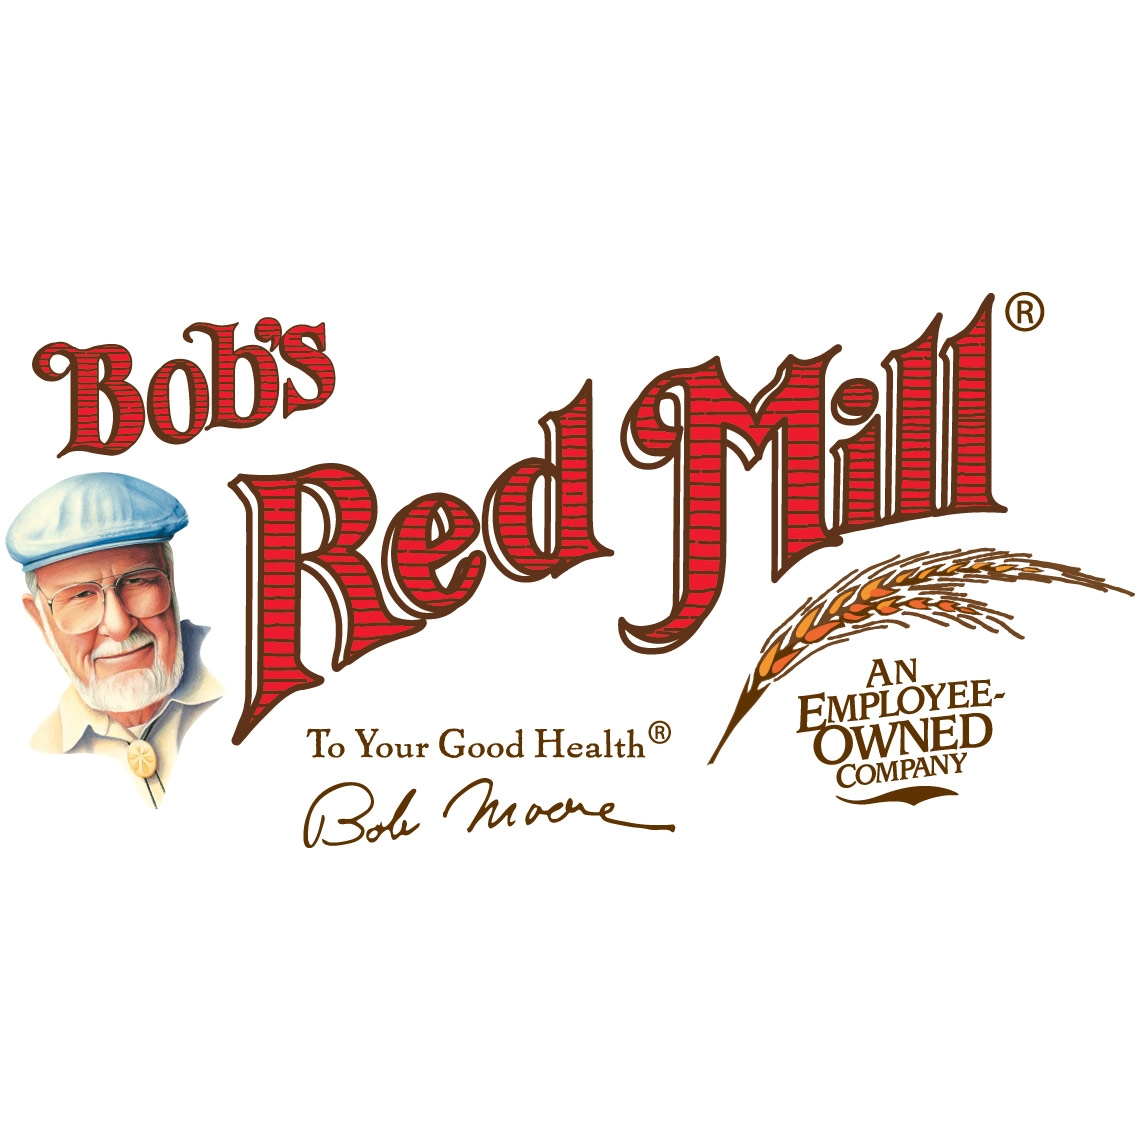 35 Oat Flour Nutrition Label Label Design Ideas 2020